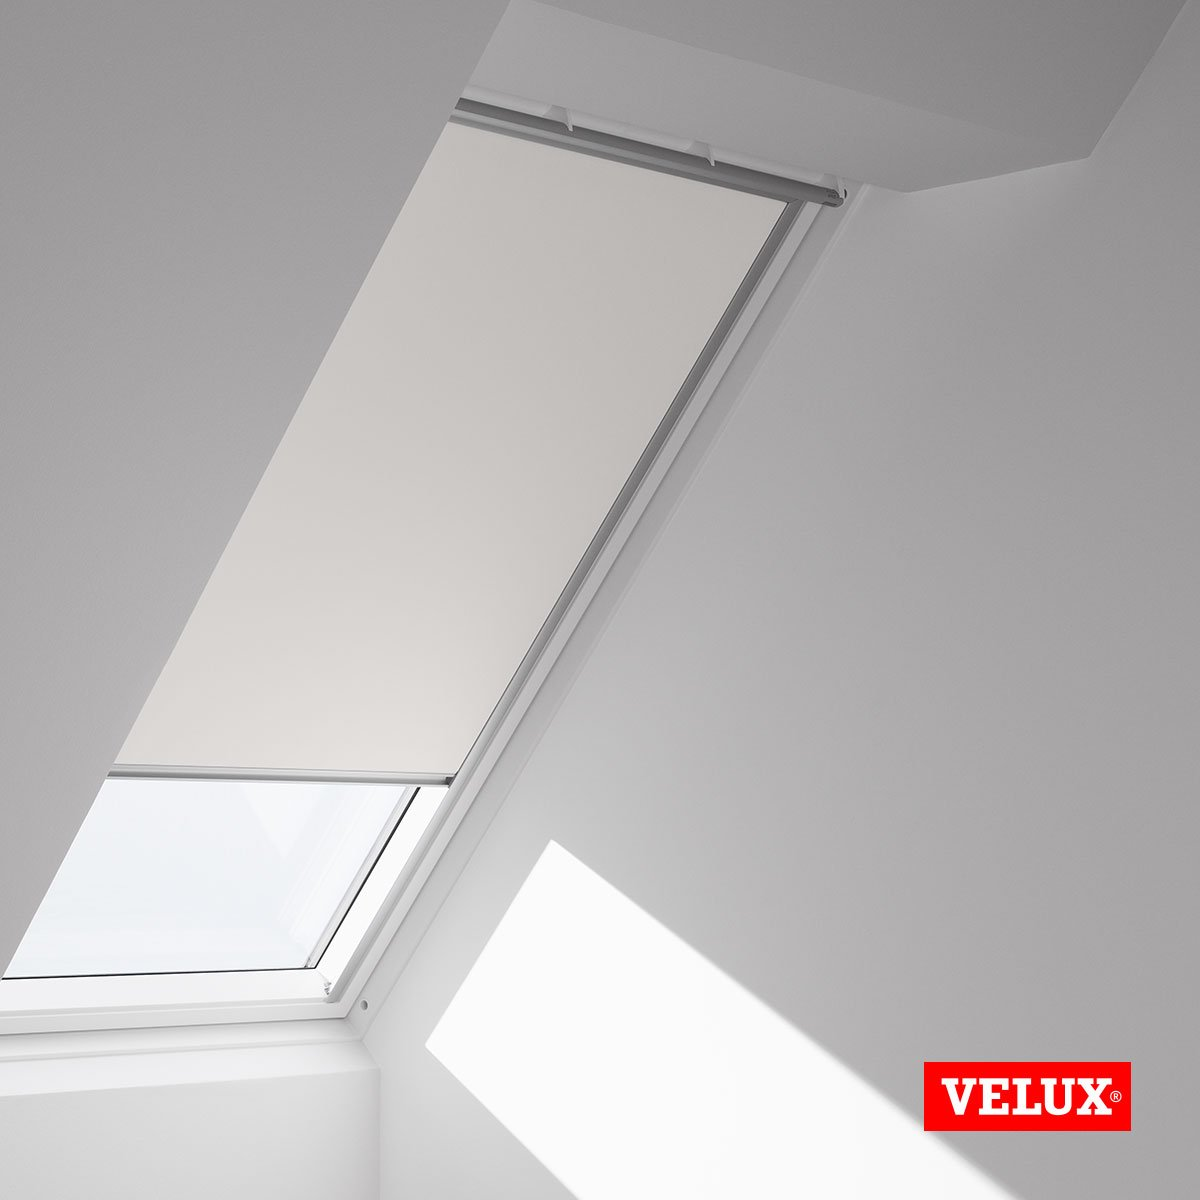 velux ggu sk06 free ggl animation with velux ggu sk06. Black Bedroom Furniture Sets. Home Design Ideas